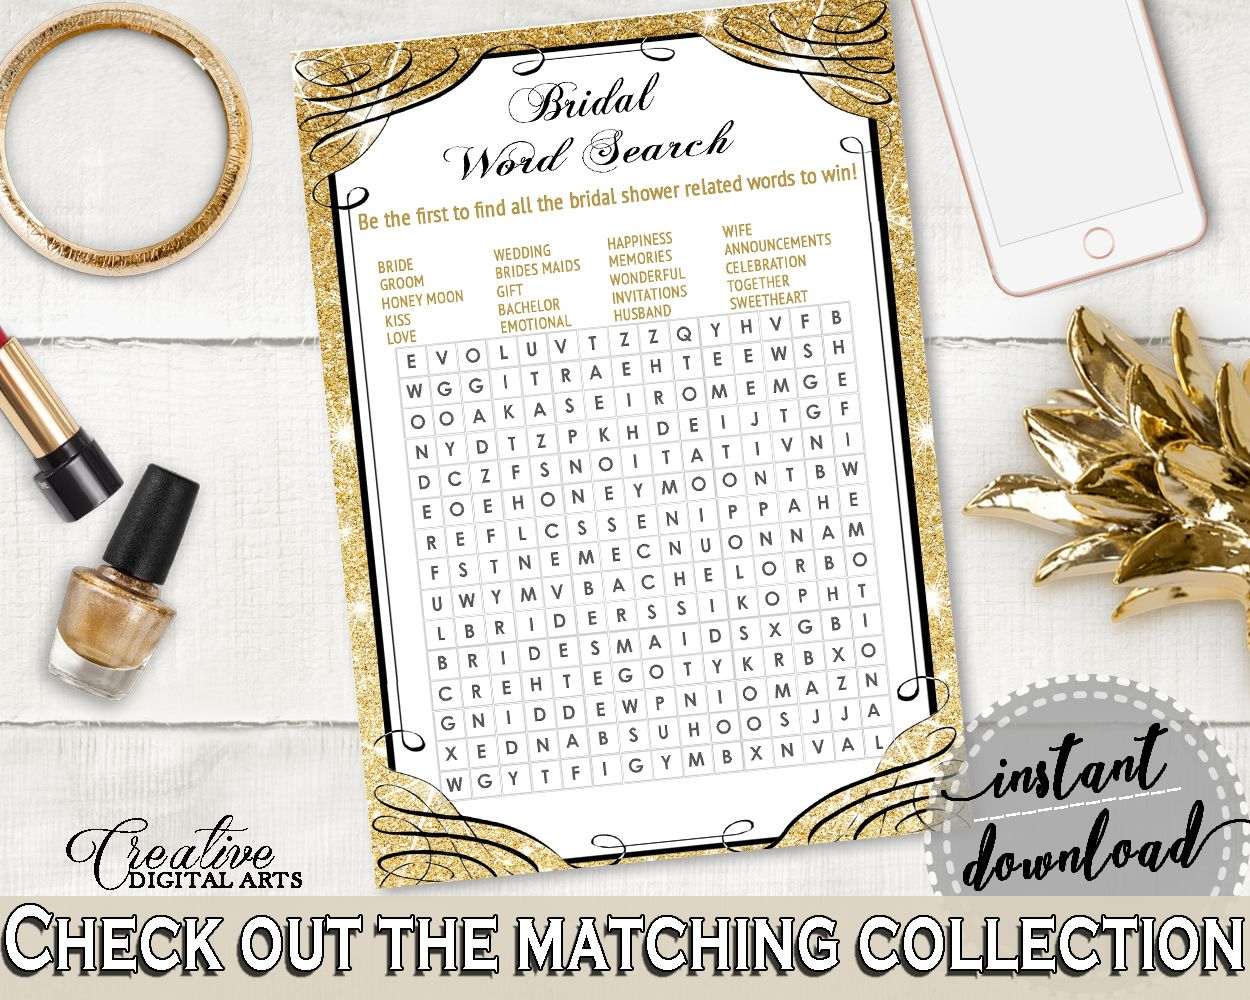 Bridal shower party supplies - Word Search In Glittering Gold Bridal Shower Gold And Yellow Theme Rows Of Squares Blazing Shower Party D Cor Party Supplies Jtd7p